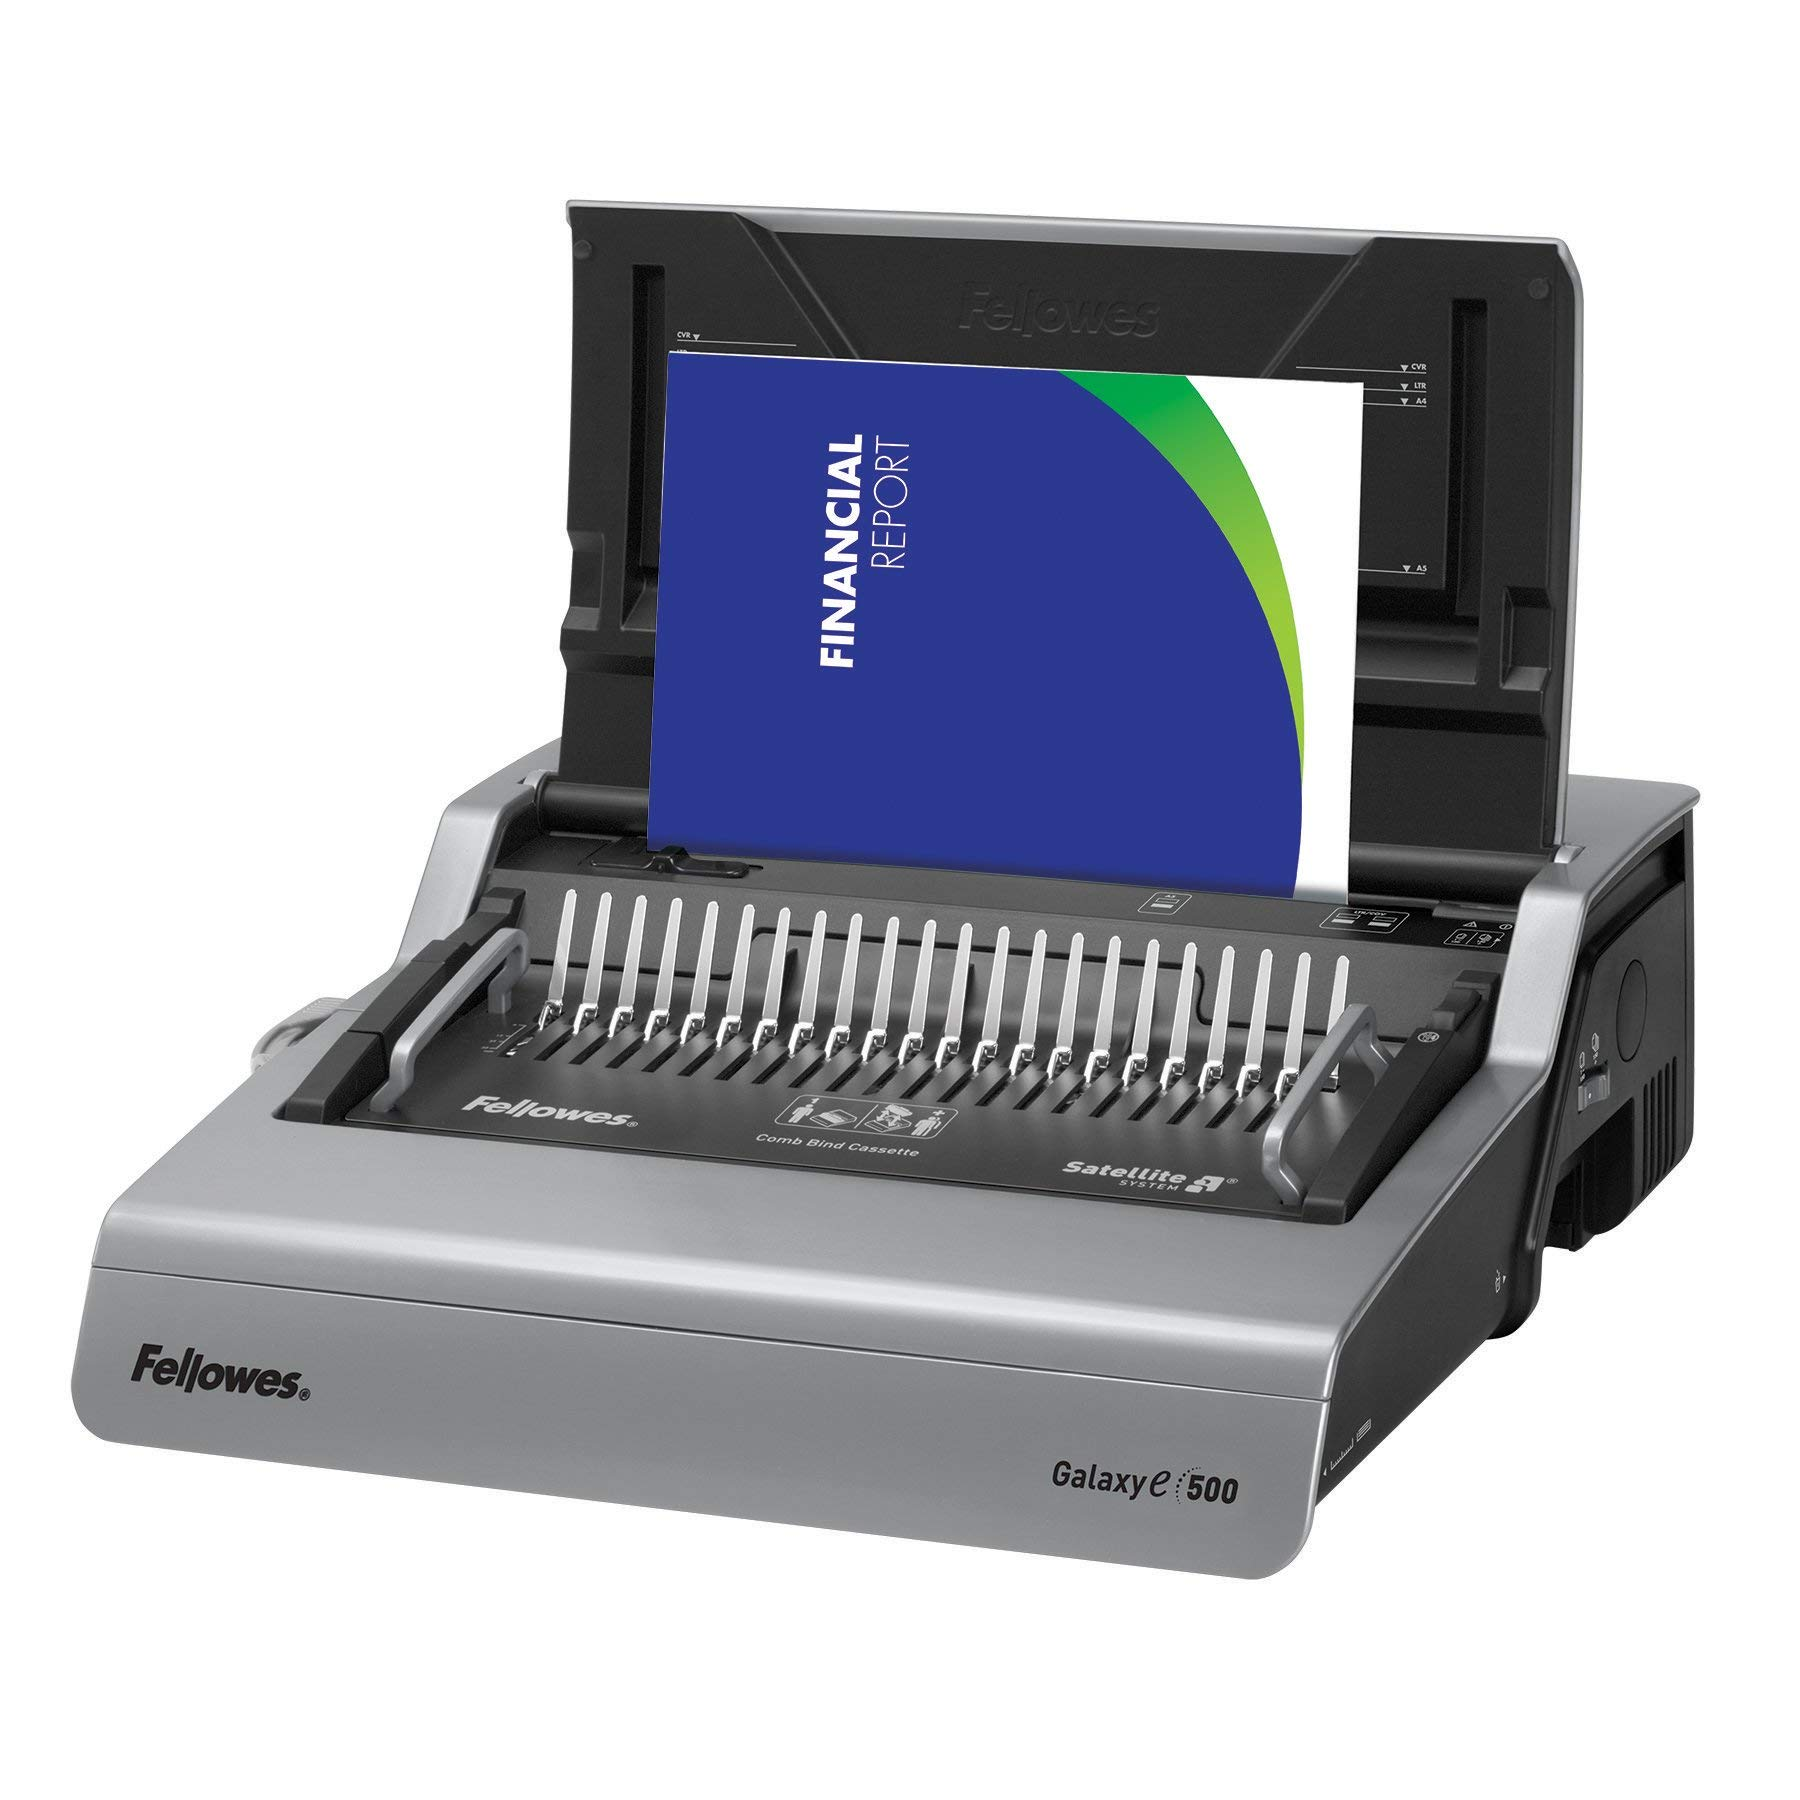 Fellowes 5218301 Galaxy 500 Electric Comb Binding System, 500 Sheets, 19 5/8x17 3/4x6 1/2, Gray (Renewed)